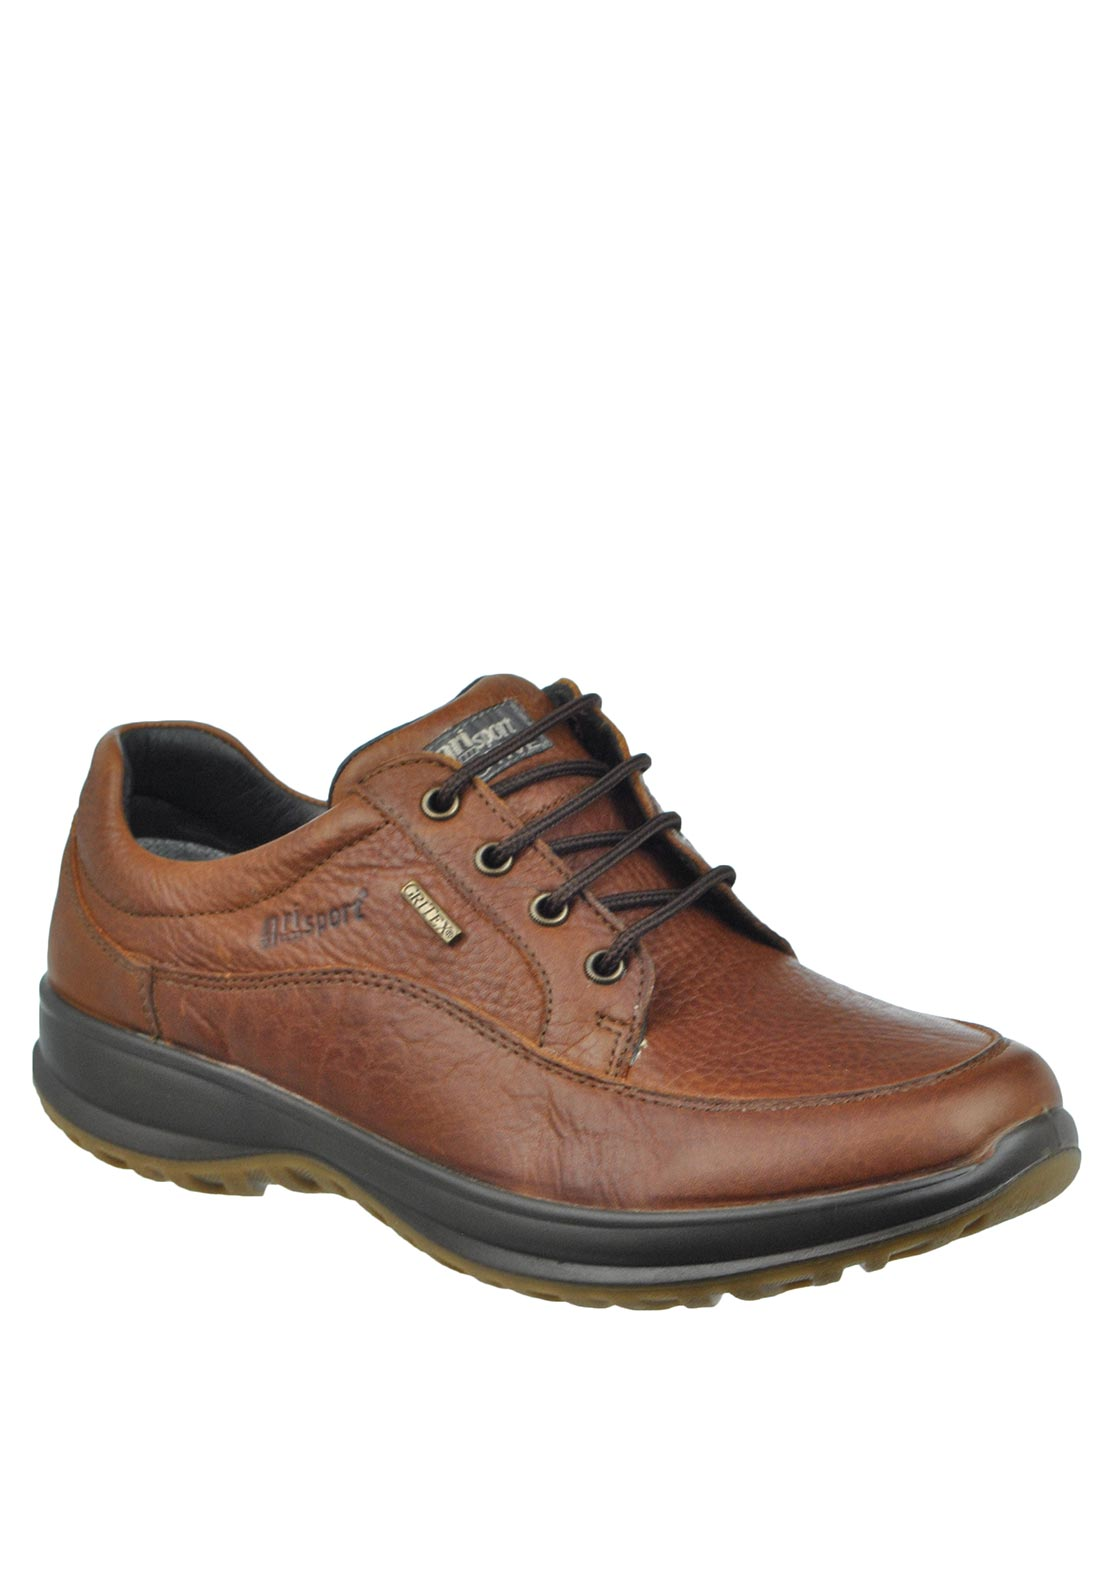 Grisport Mens Livingston Leather Walking Shoe, Tan